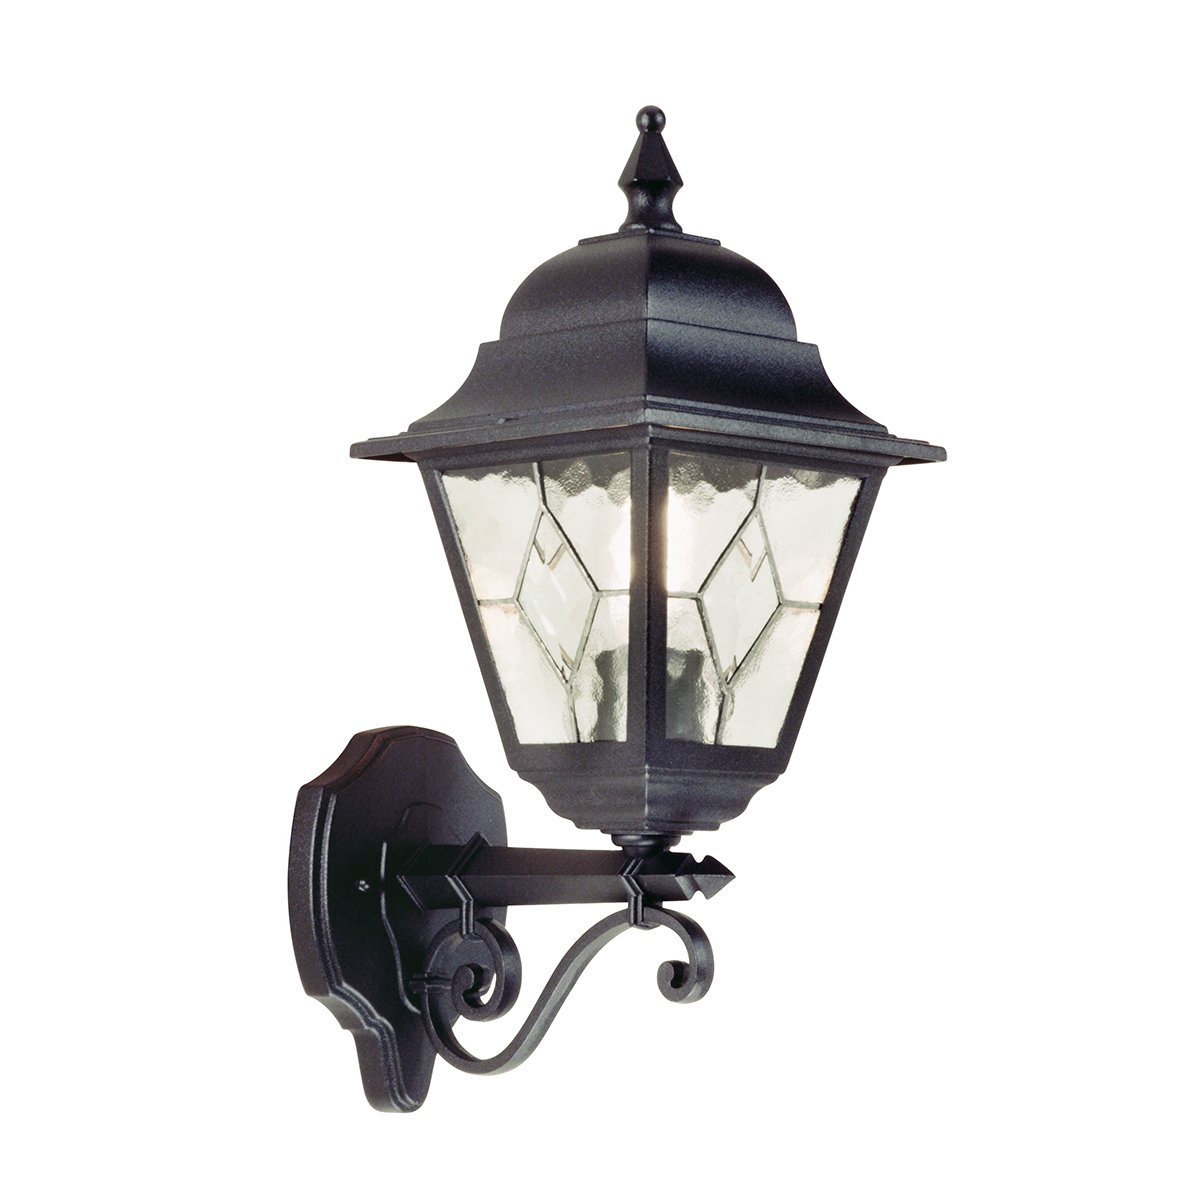 Elstead NR2 Norfolk Down Wall Leaded Lantern in Black